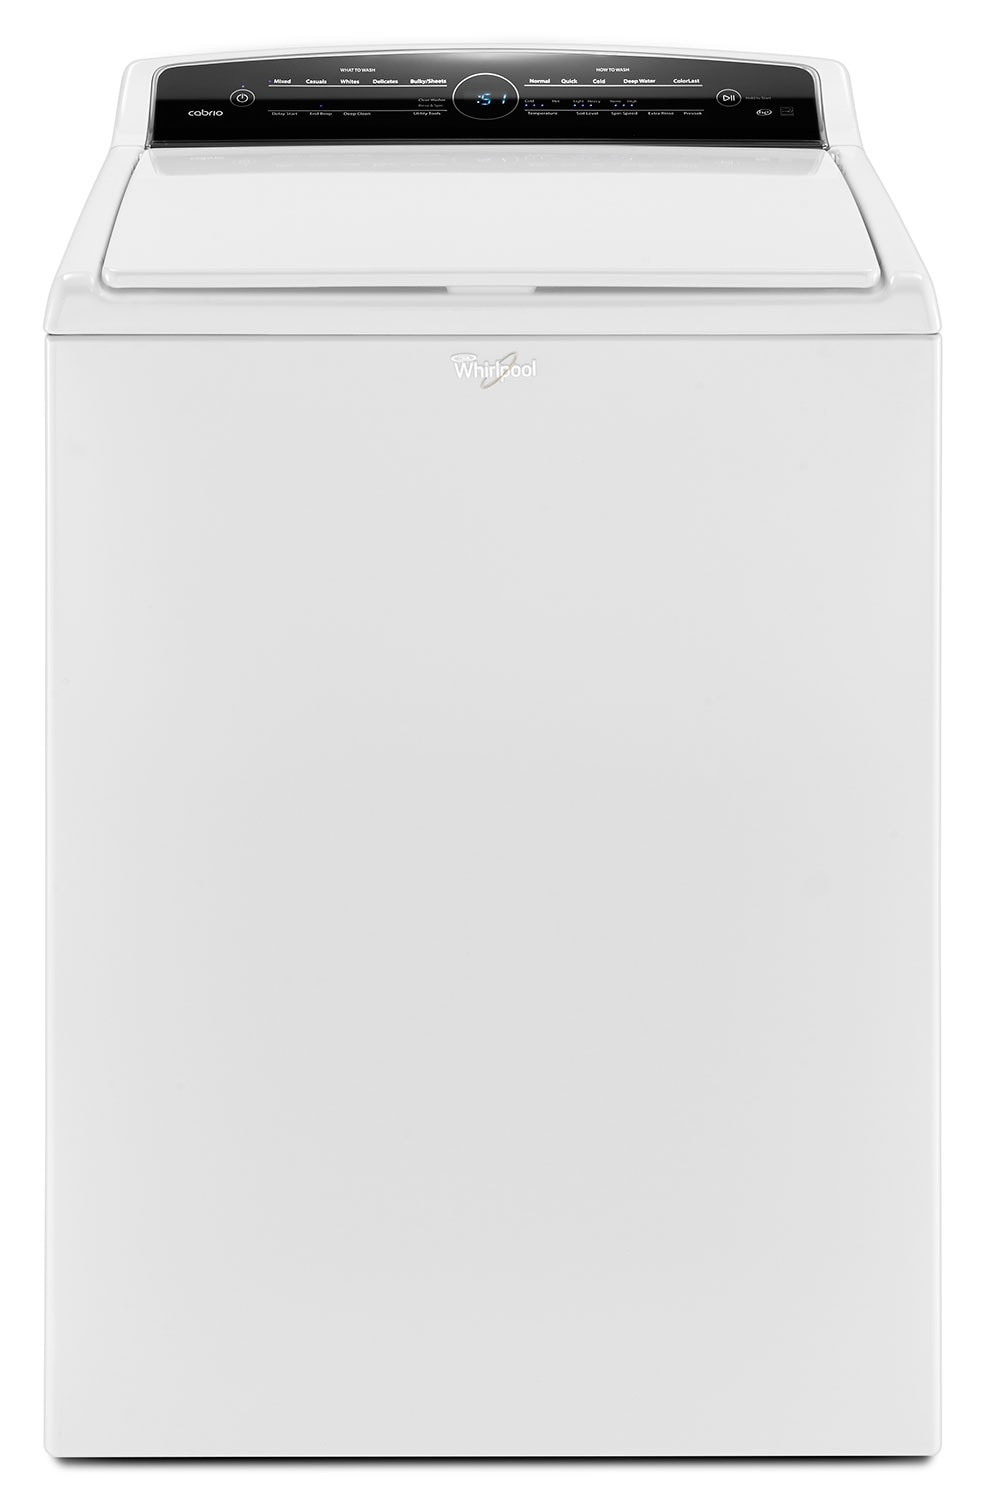 Whirlpool® 5.5 Cu. Ft. Cabrio® High-Efficiency Top-Load Washer – White